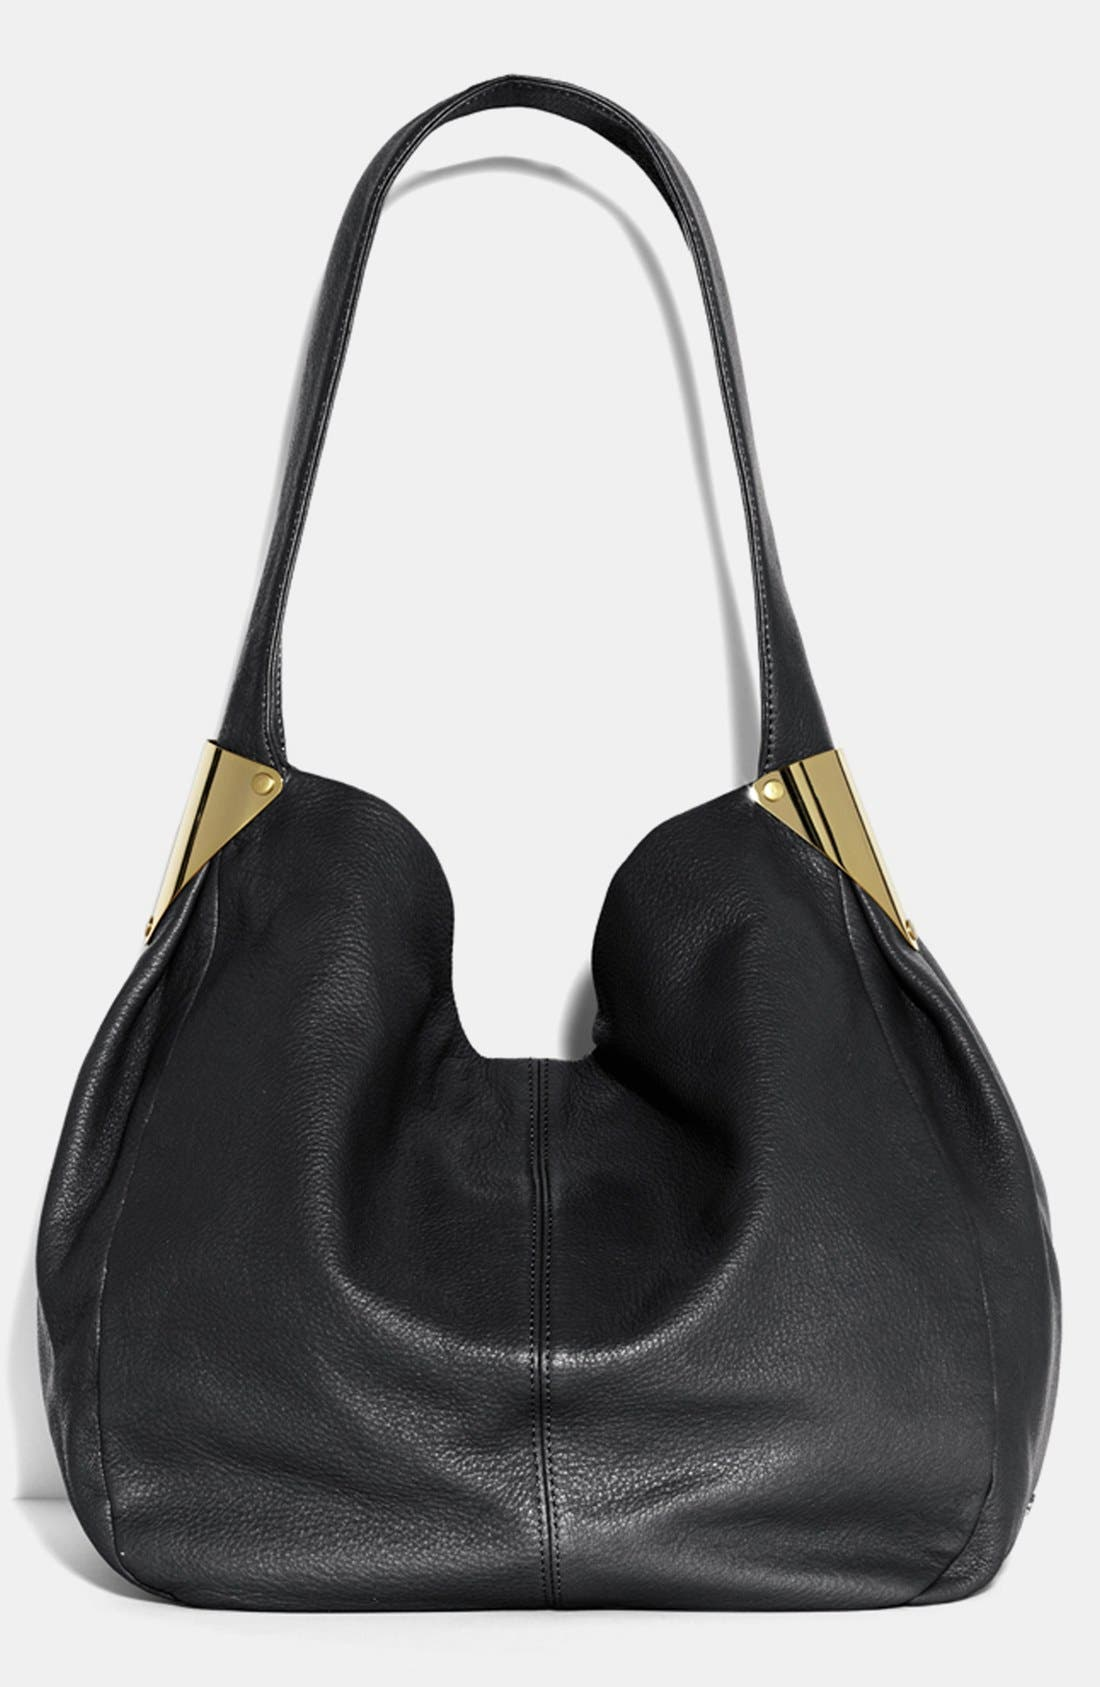 Main Image - Vince Camuto 'Grace' Leather Hobo